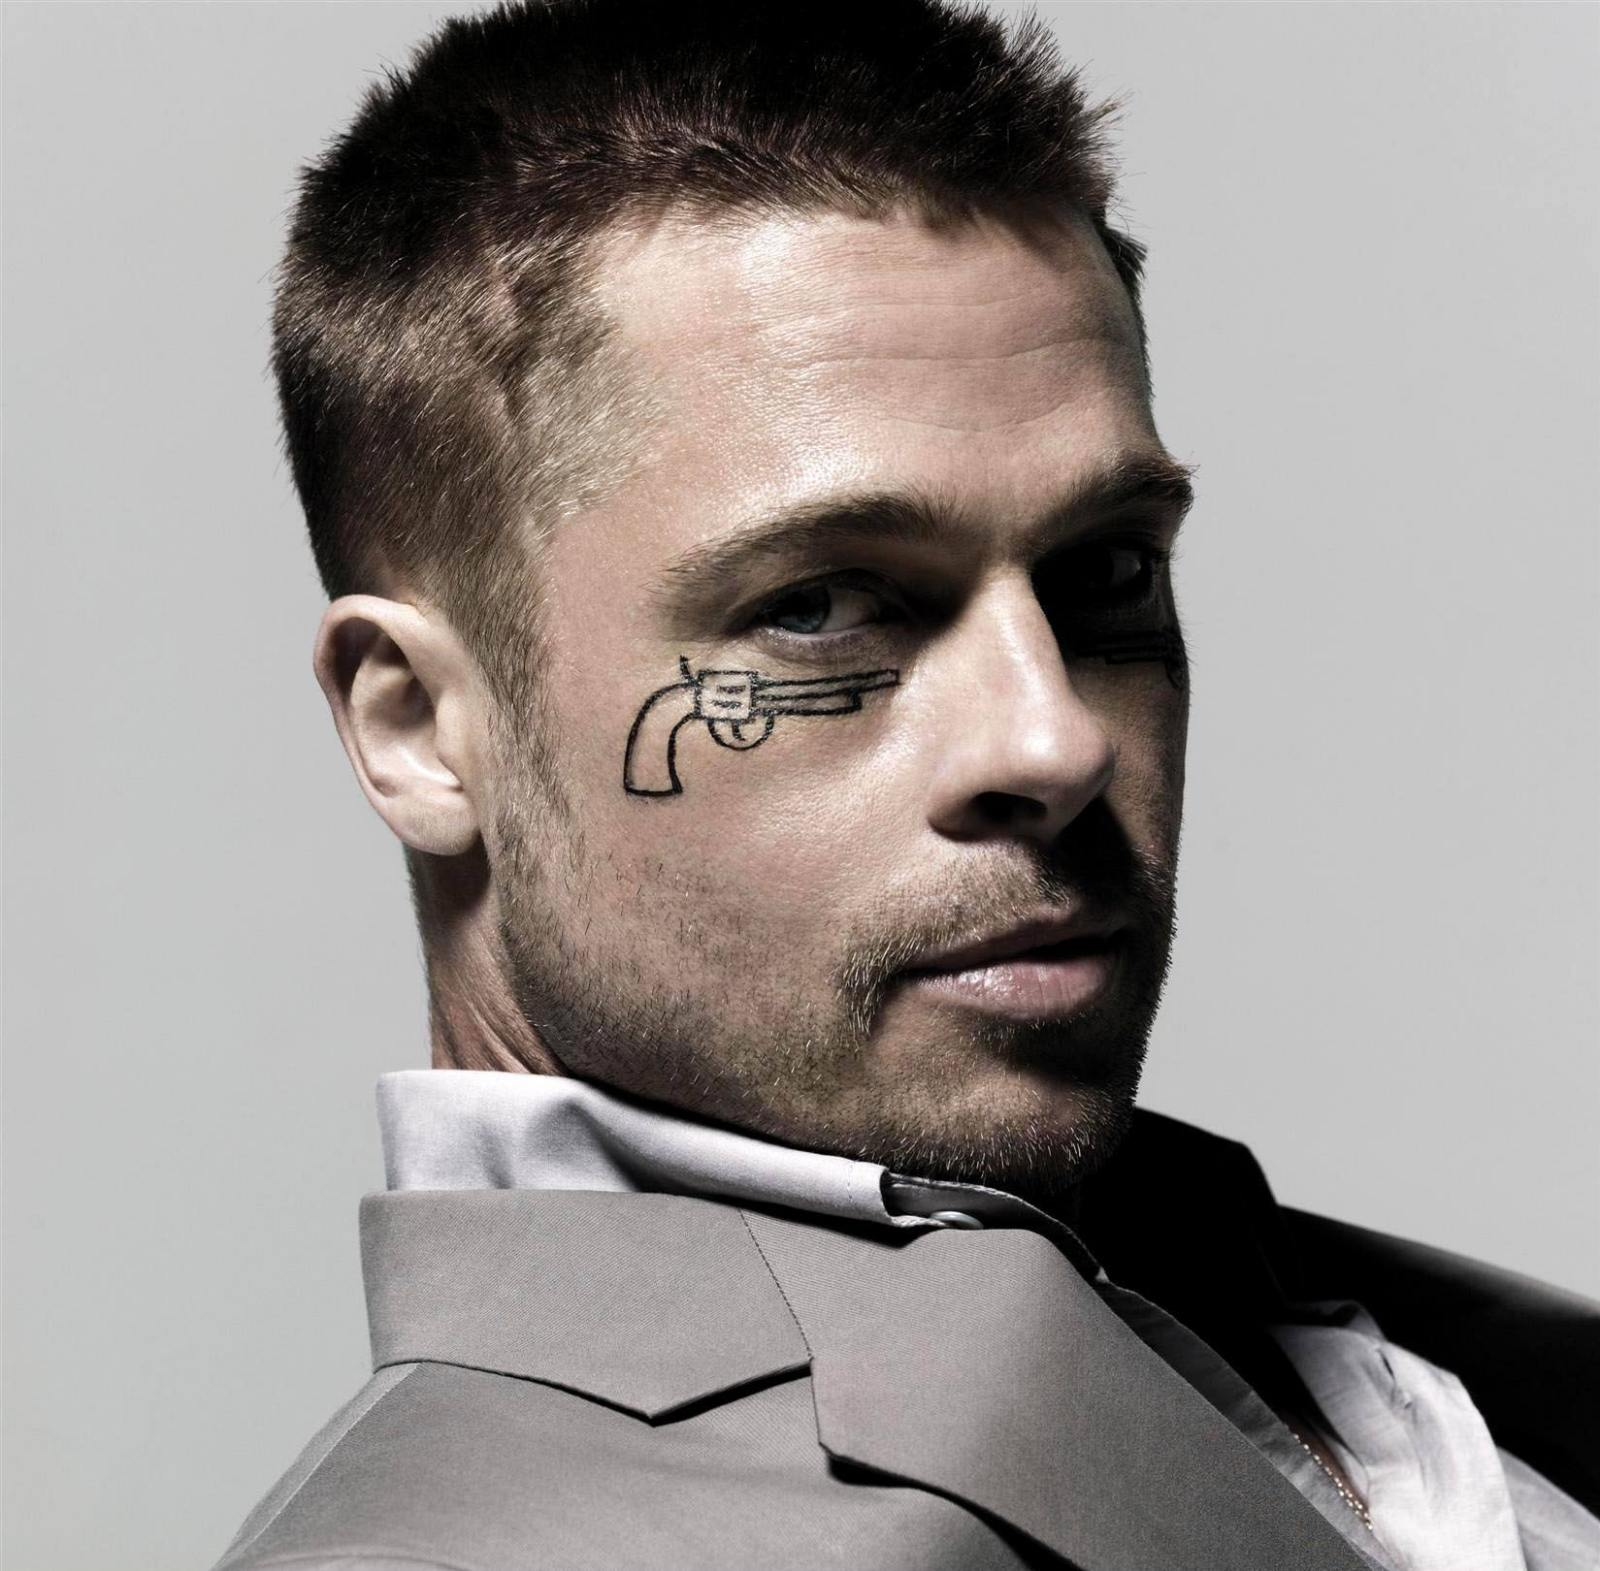 brad pitt fight club buzz cut - photo #7